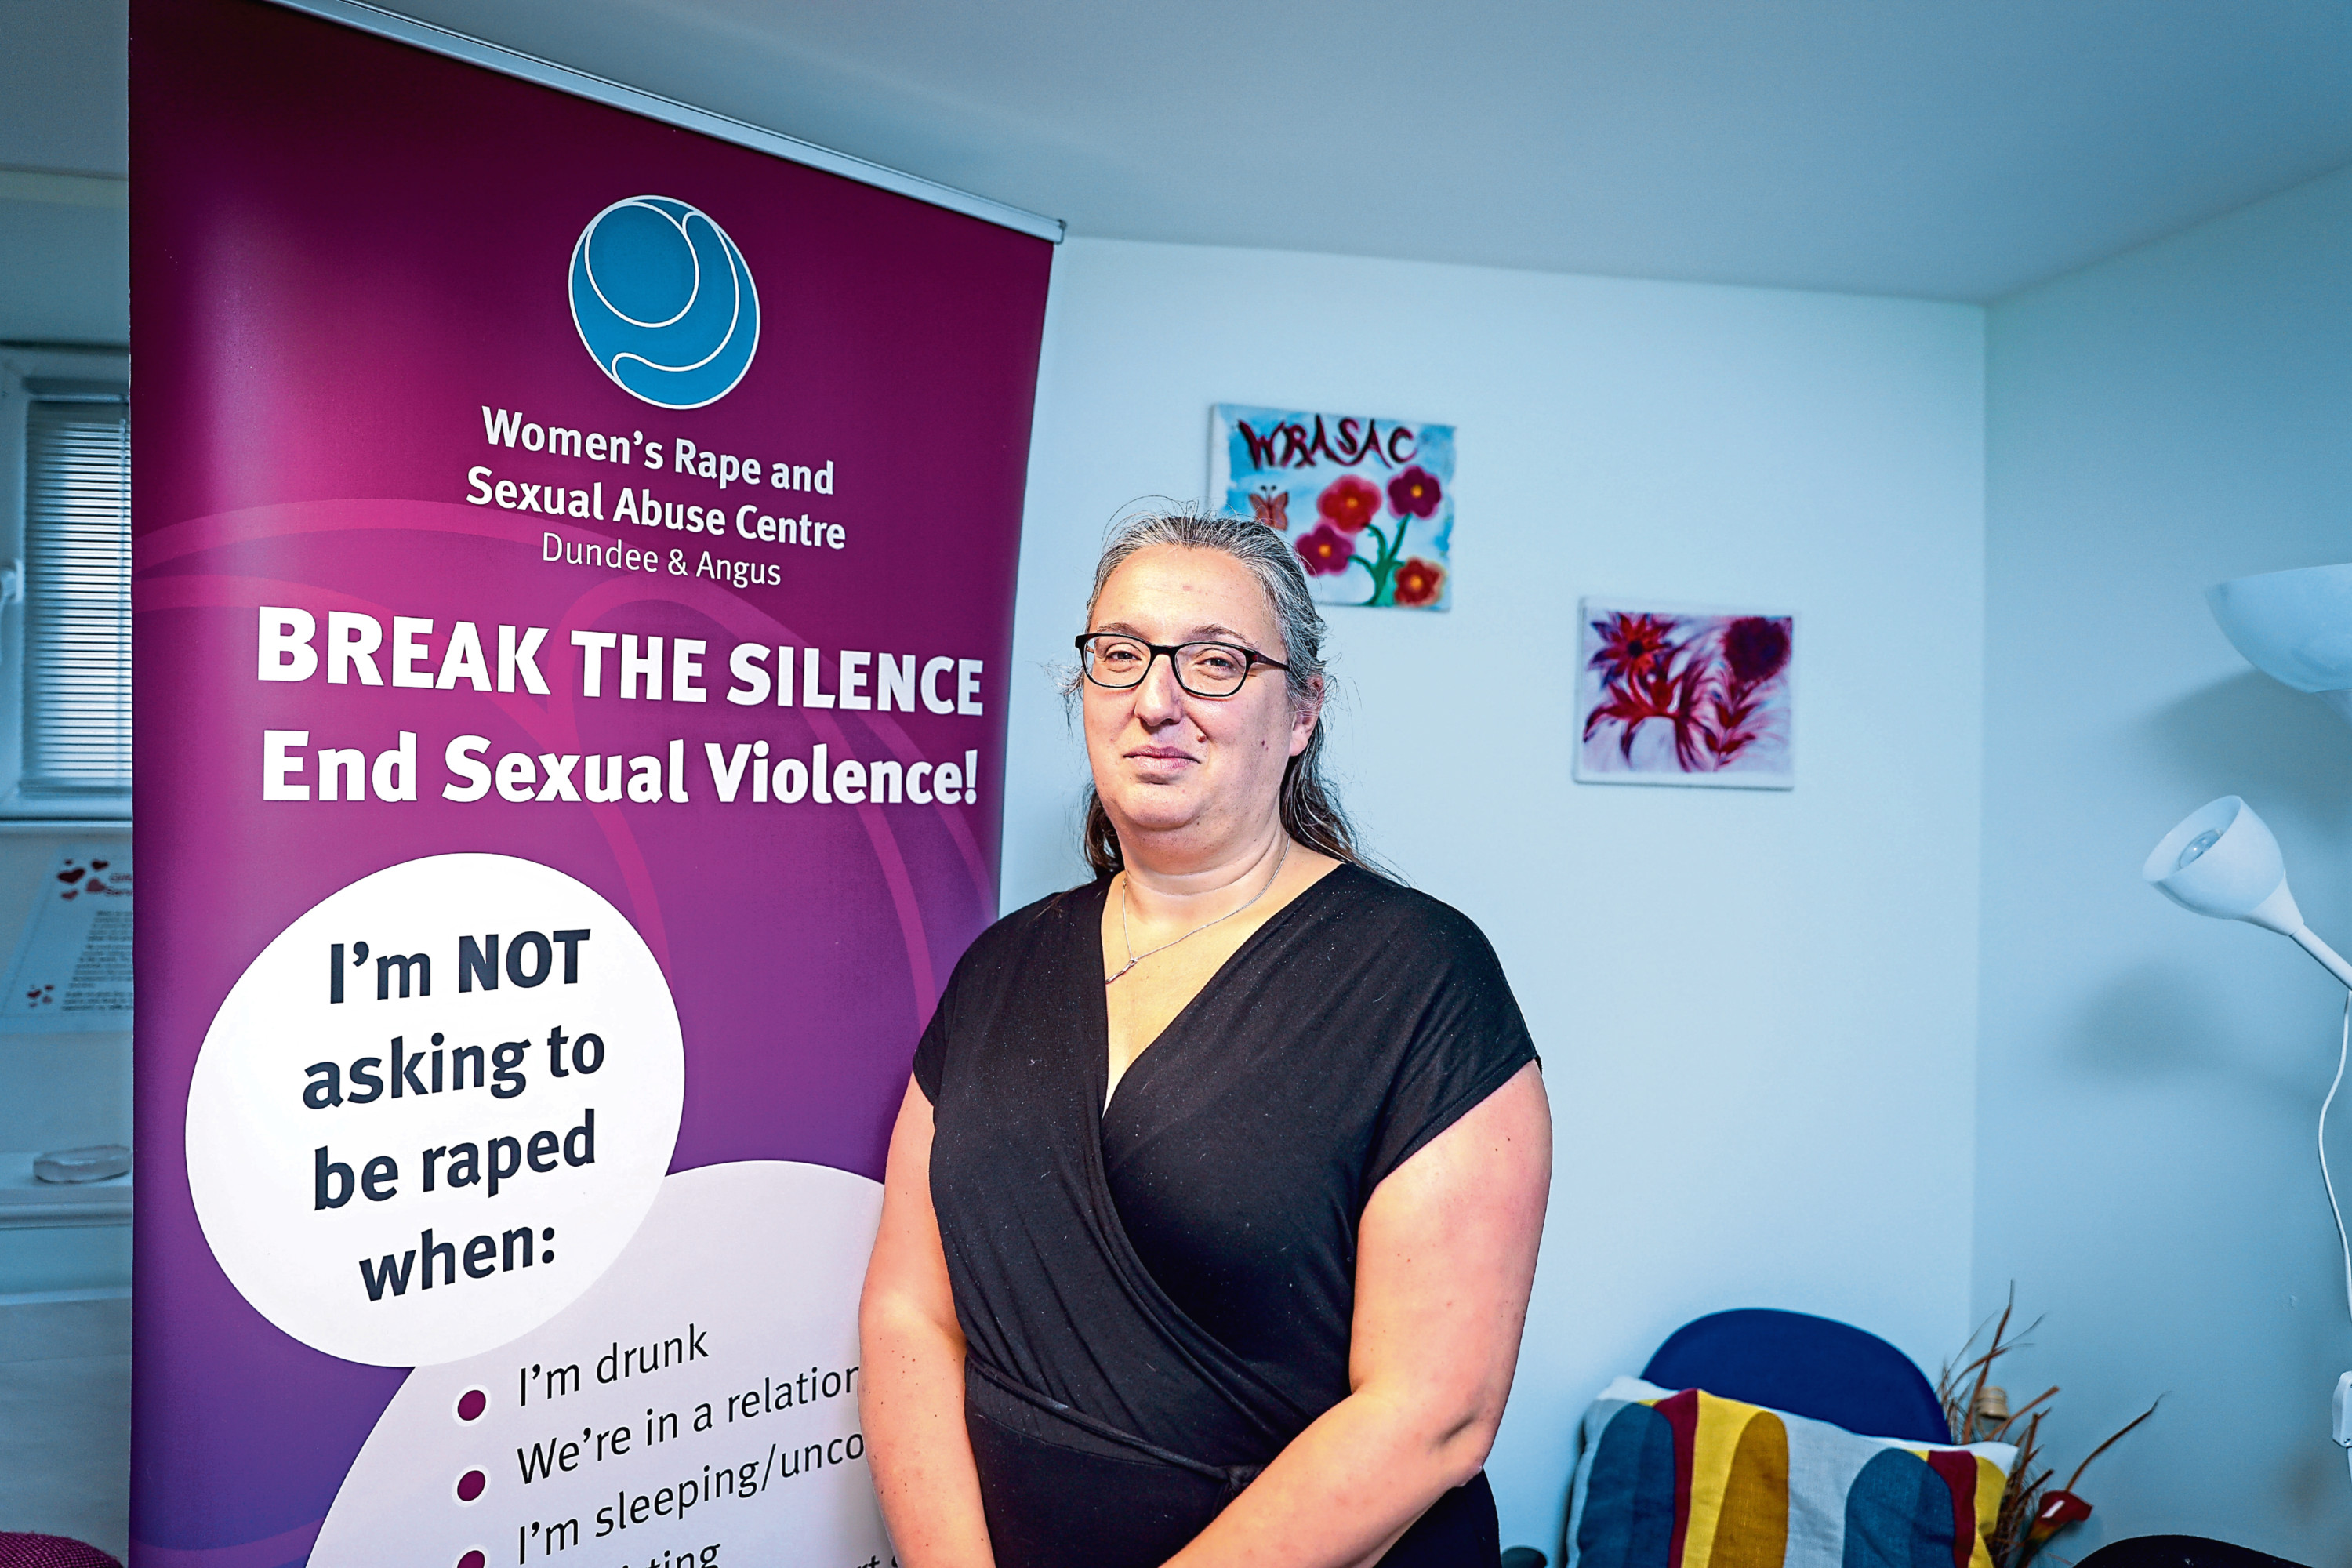 Heather Williams, of the Women's Rape and Sexual Crisis Centre in Dundee said they were currently preparing to deal with an increase in cases of domestic abuse.